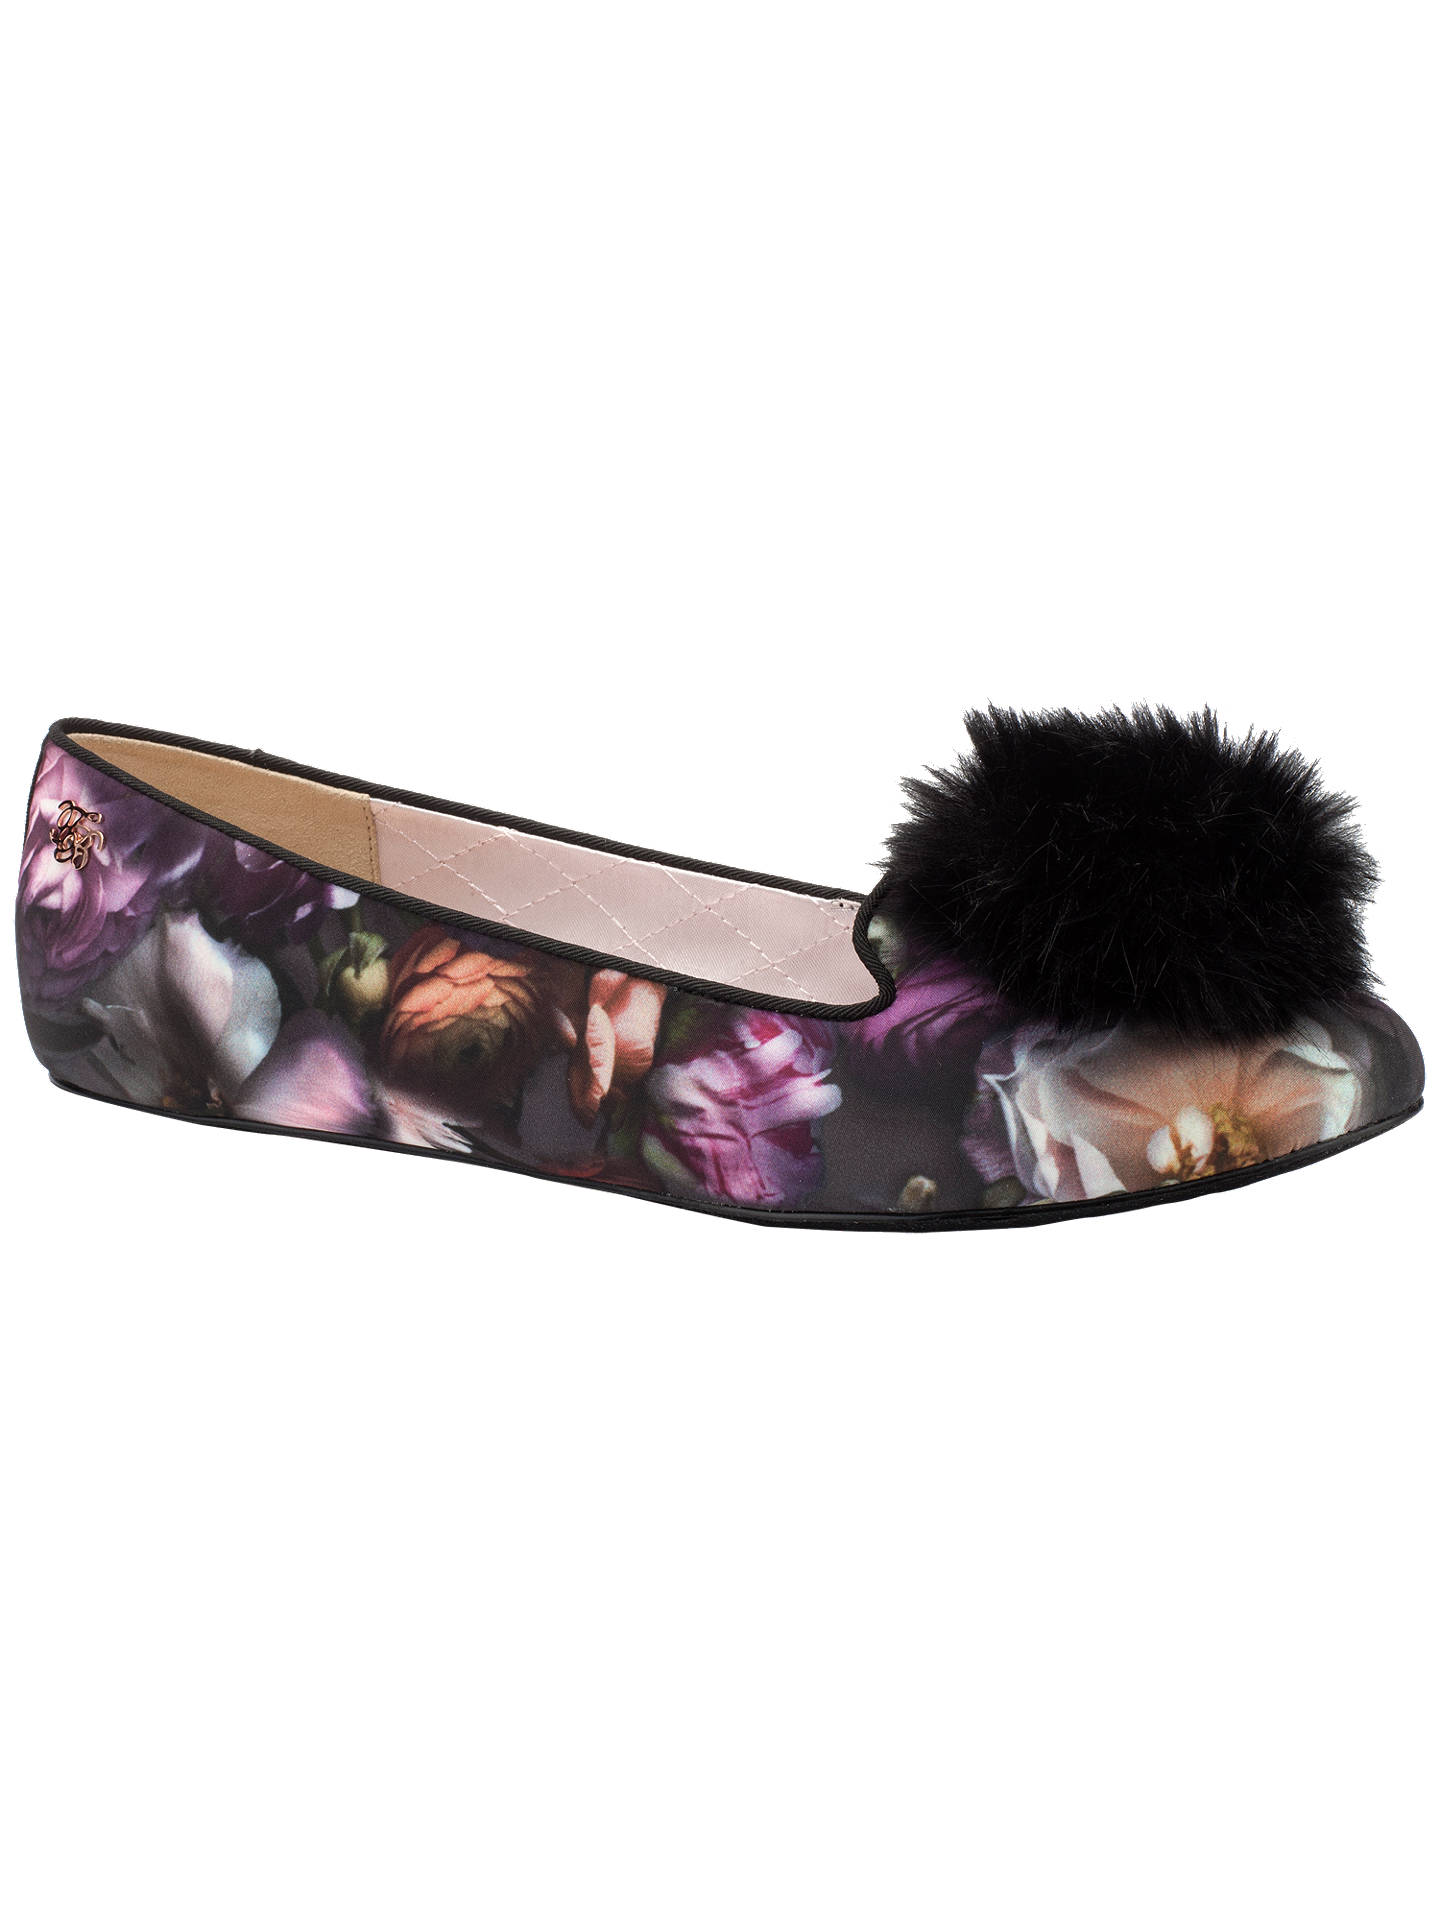 b34b1f871ed2a Previous Image Next Image. Buy Ted Baker Iveyed Pom Pom Slippers